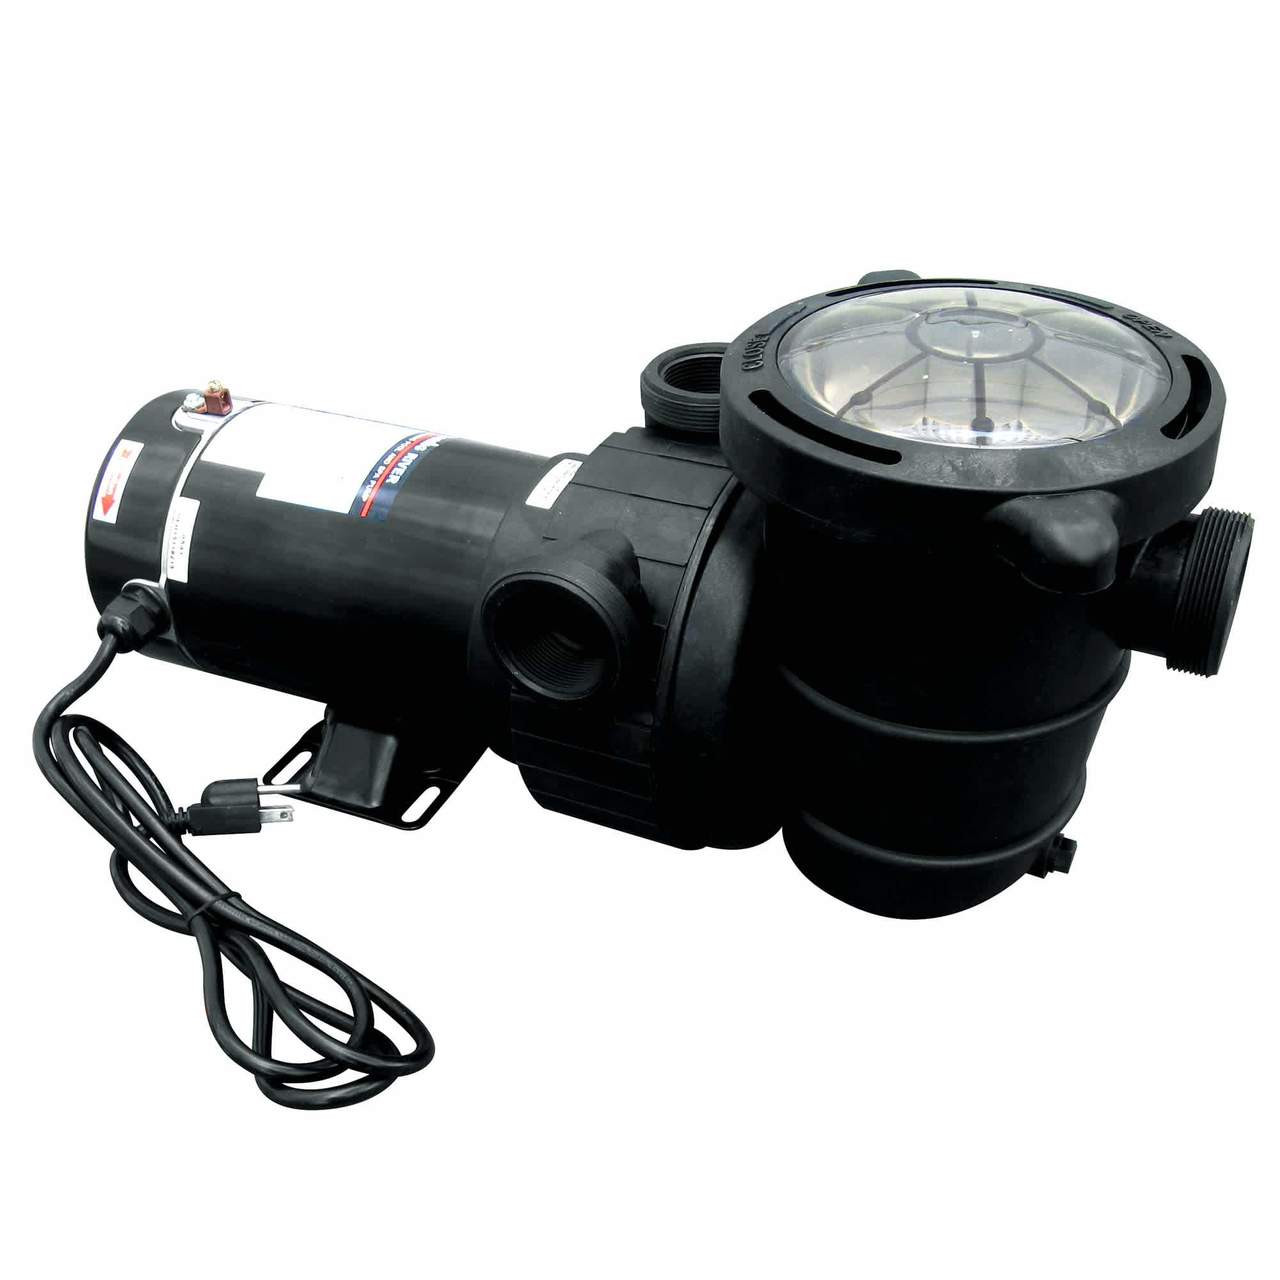 Tidalwave 2 Speed 1 HP & 1.5 HP Replacement Pumps For Above Ground Pools ($249.99-$269.99)